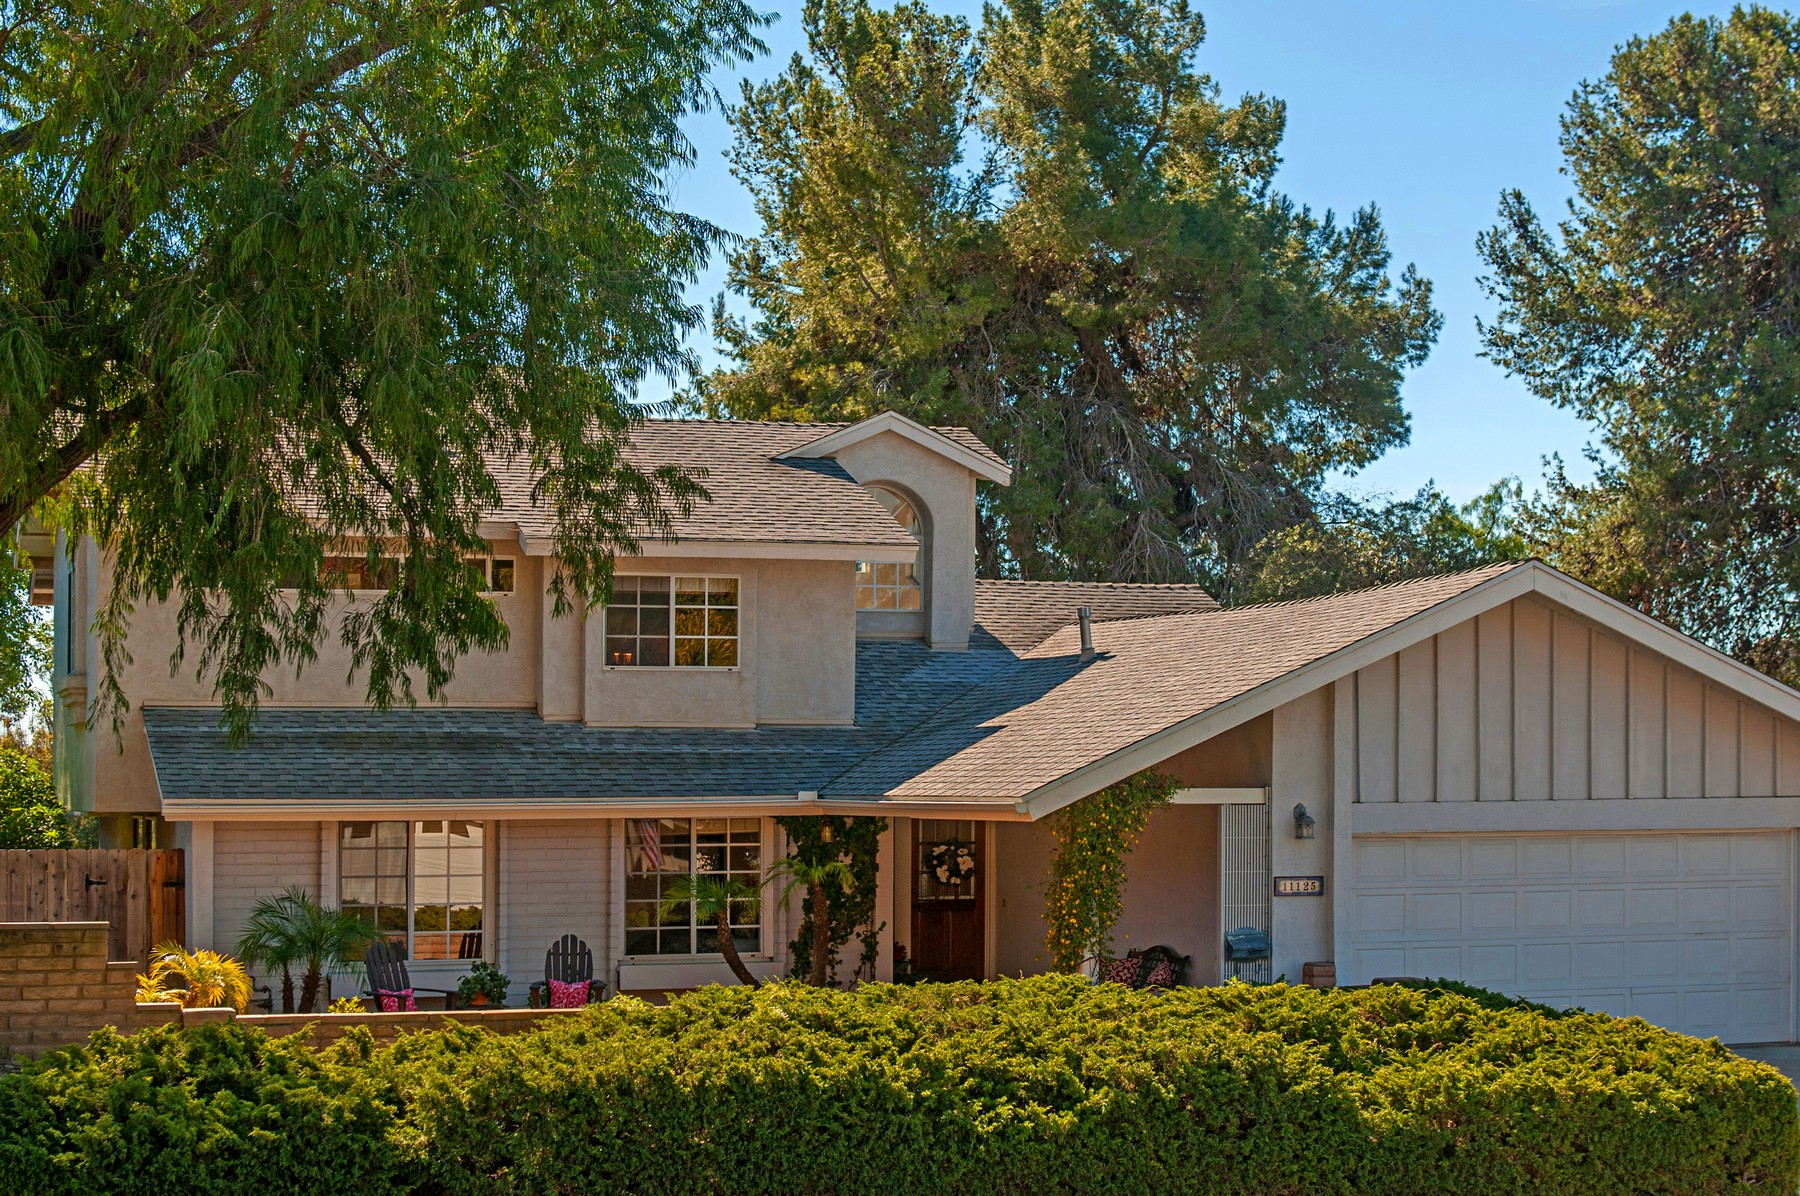 Single Family Home for Sale at 11125 Red Cedar Drive Scripps Ranch, San Diego, California, 92131 United States